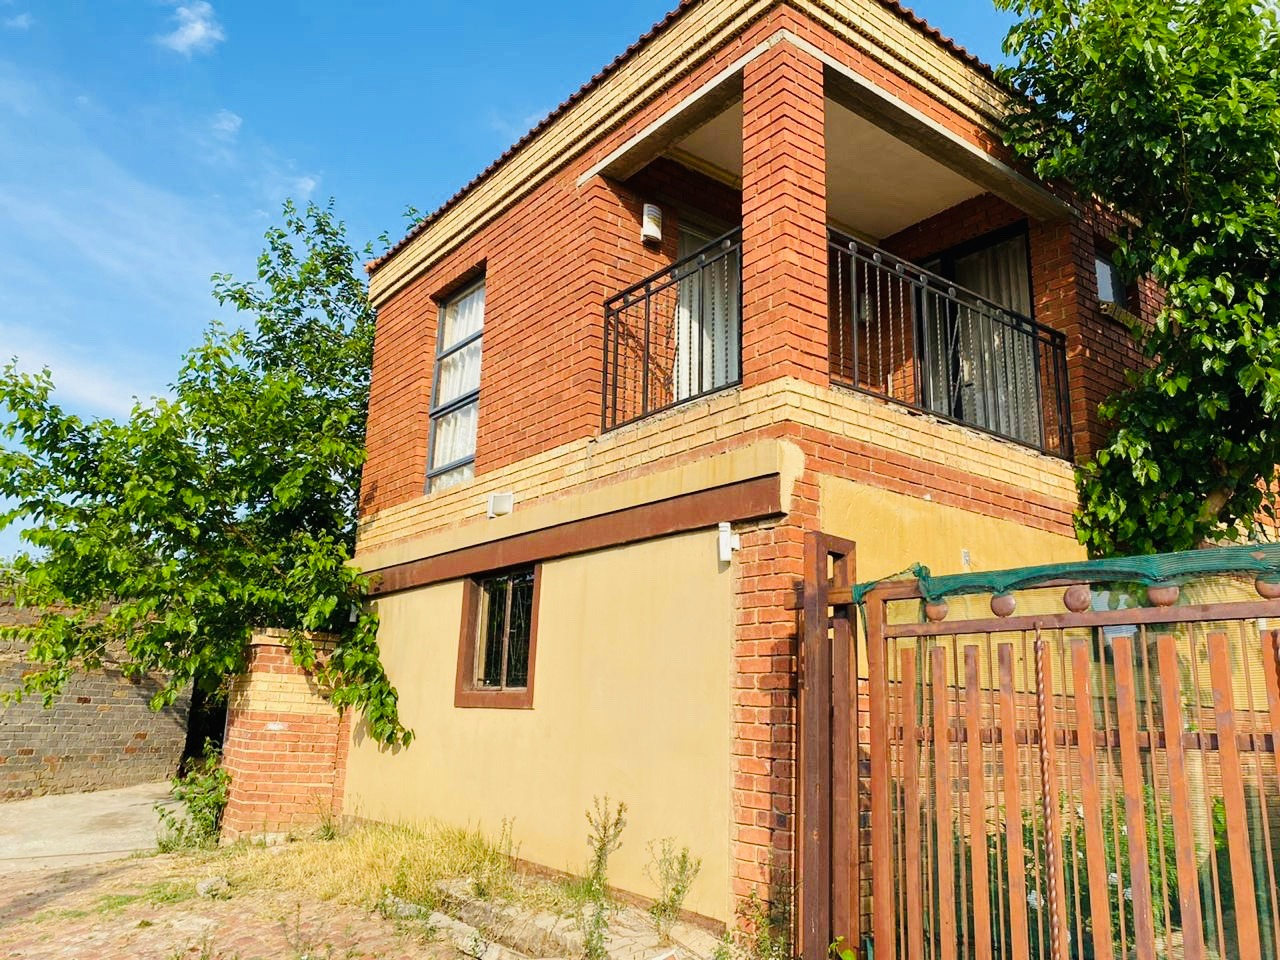 3 Bedroom house for Sale -Cosmo City